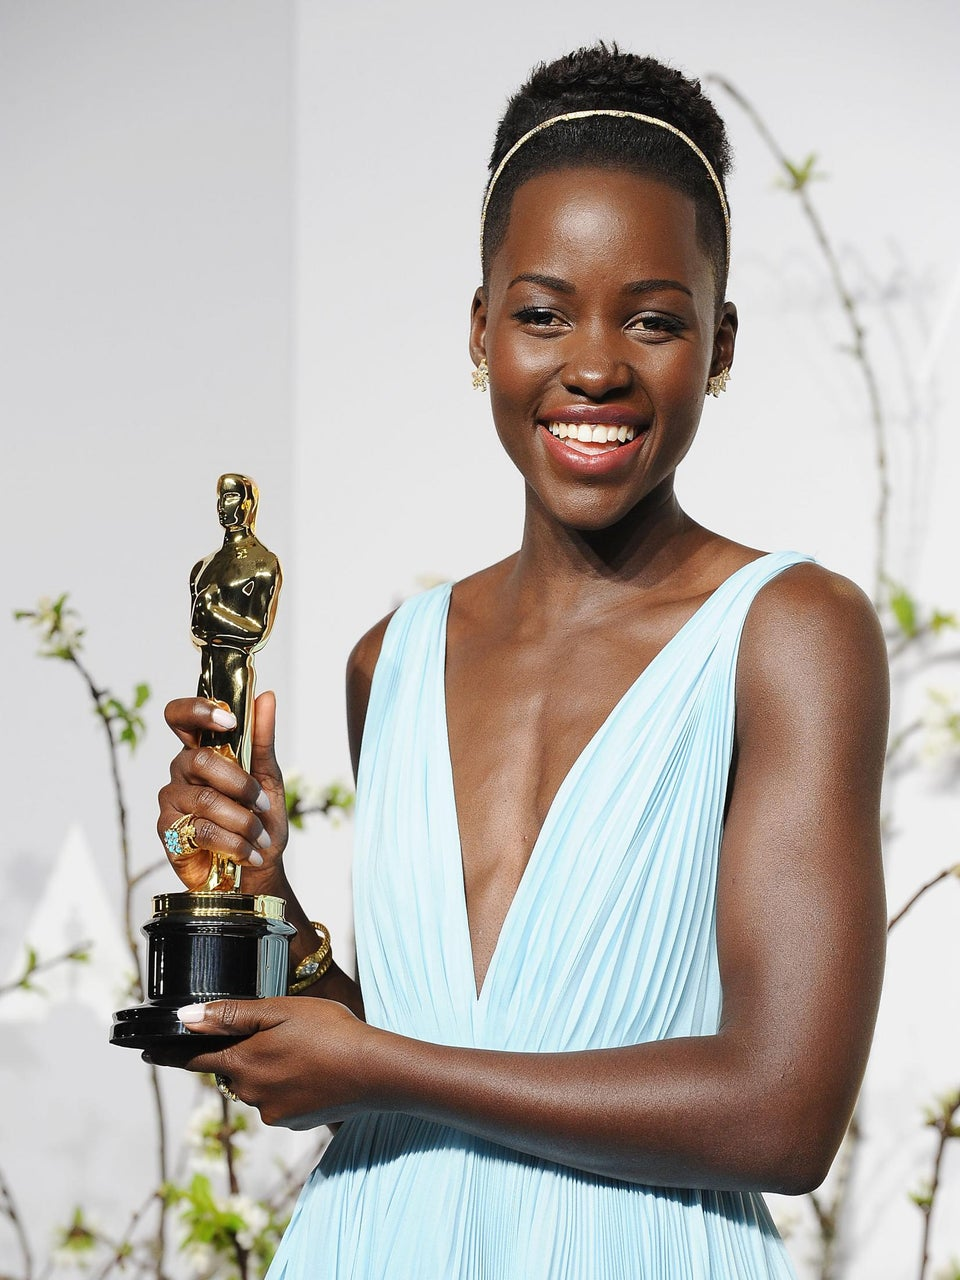 ESSENCE Poll: What's Your Favorite Oscars Moment?